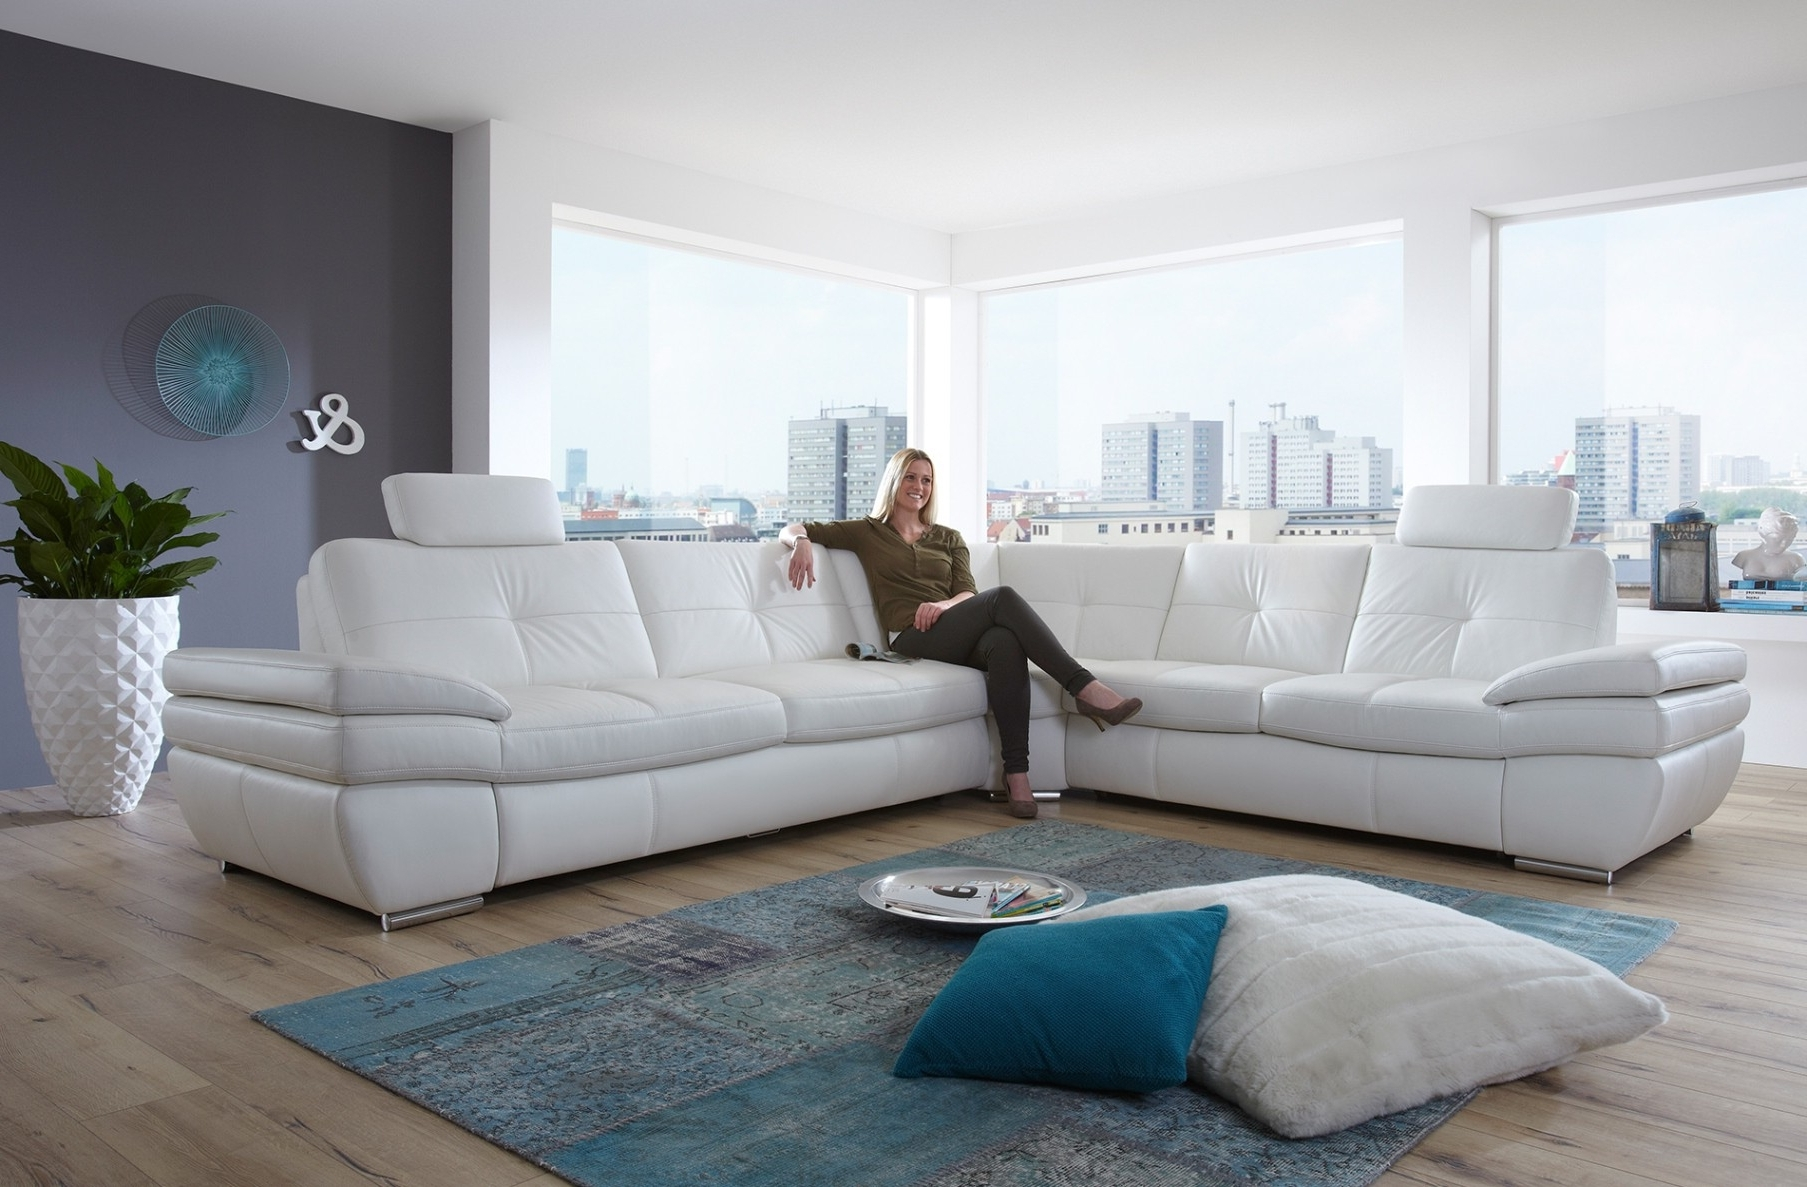 Everett Wa Sectional Sofas In Favorite Furniture : Sectional Sleeper Sofa Queen Has One Of The Best Kind (View 2 of 15)